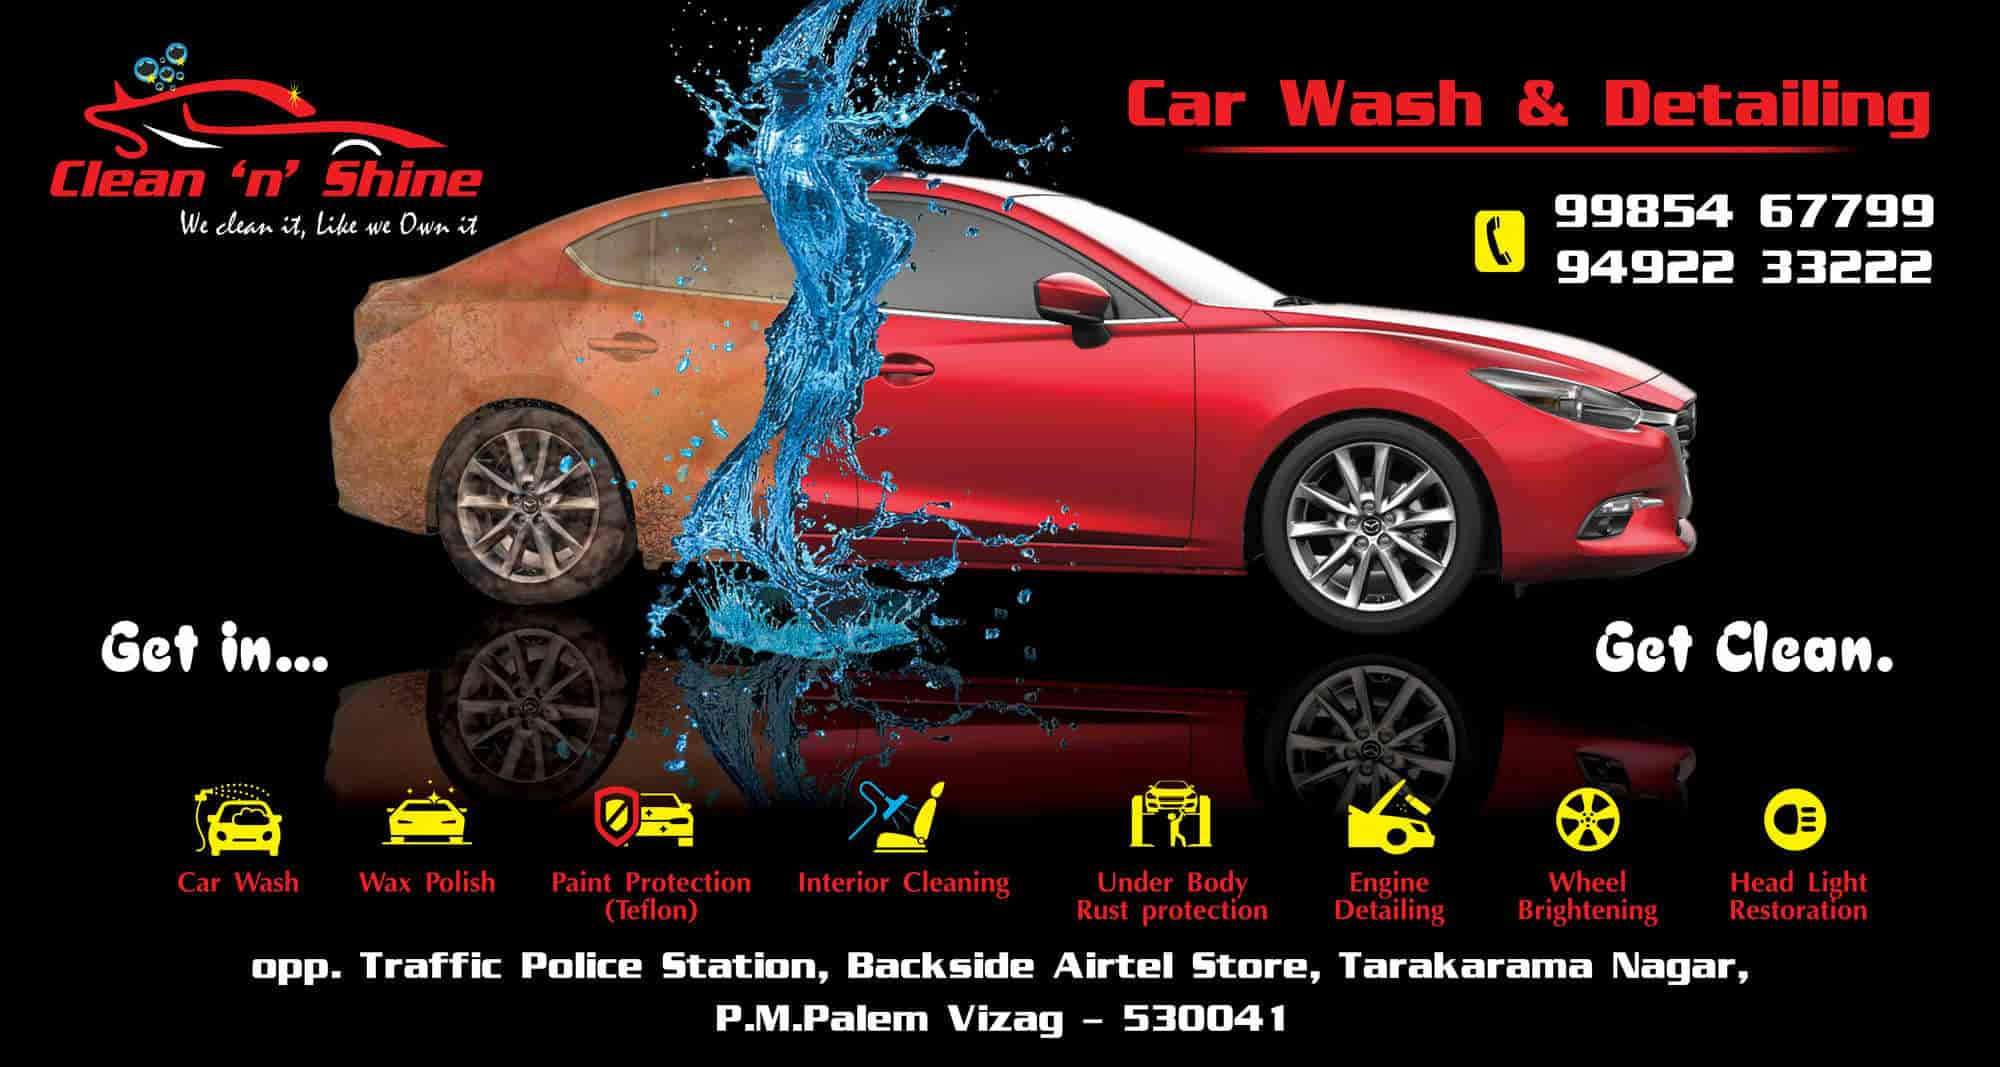 Clean N Shine Car Wash And Detailing Madhurawada Car Washing